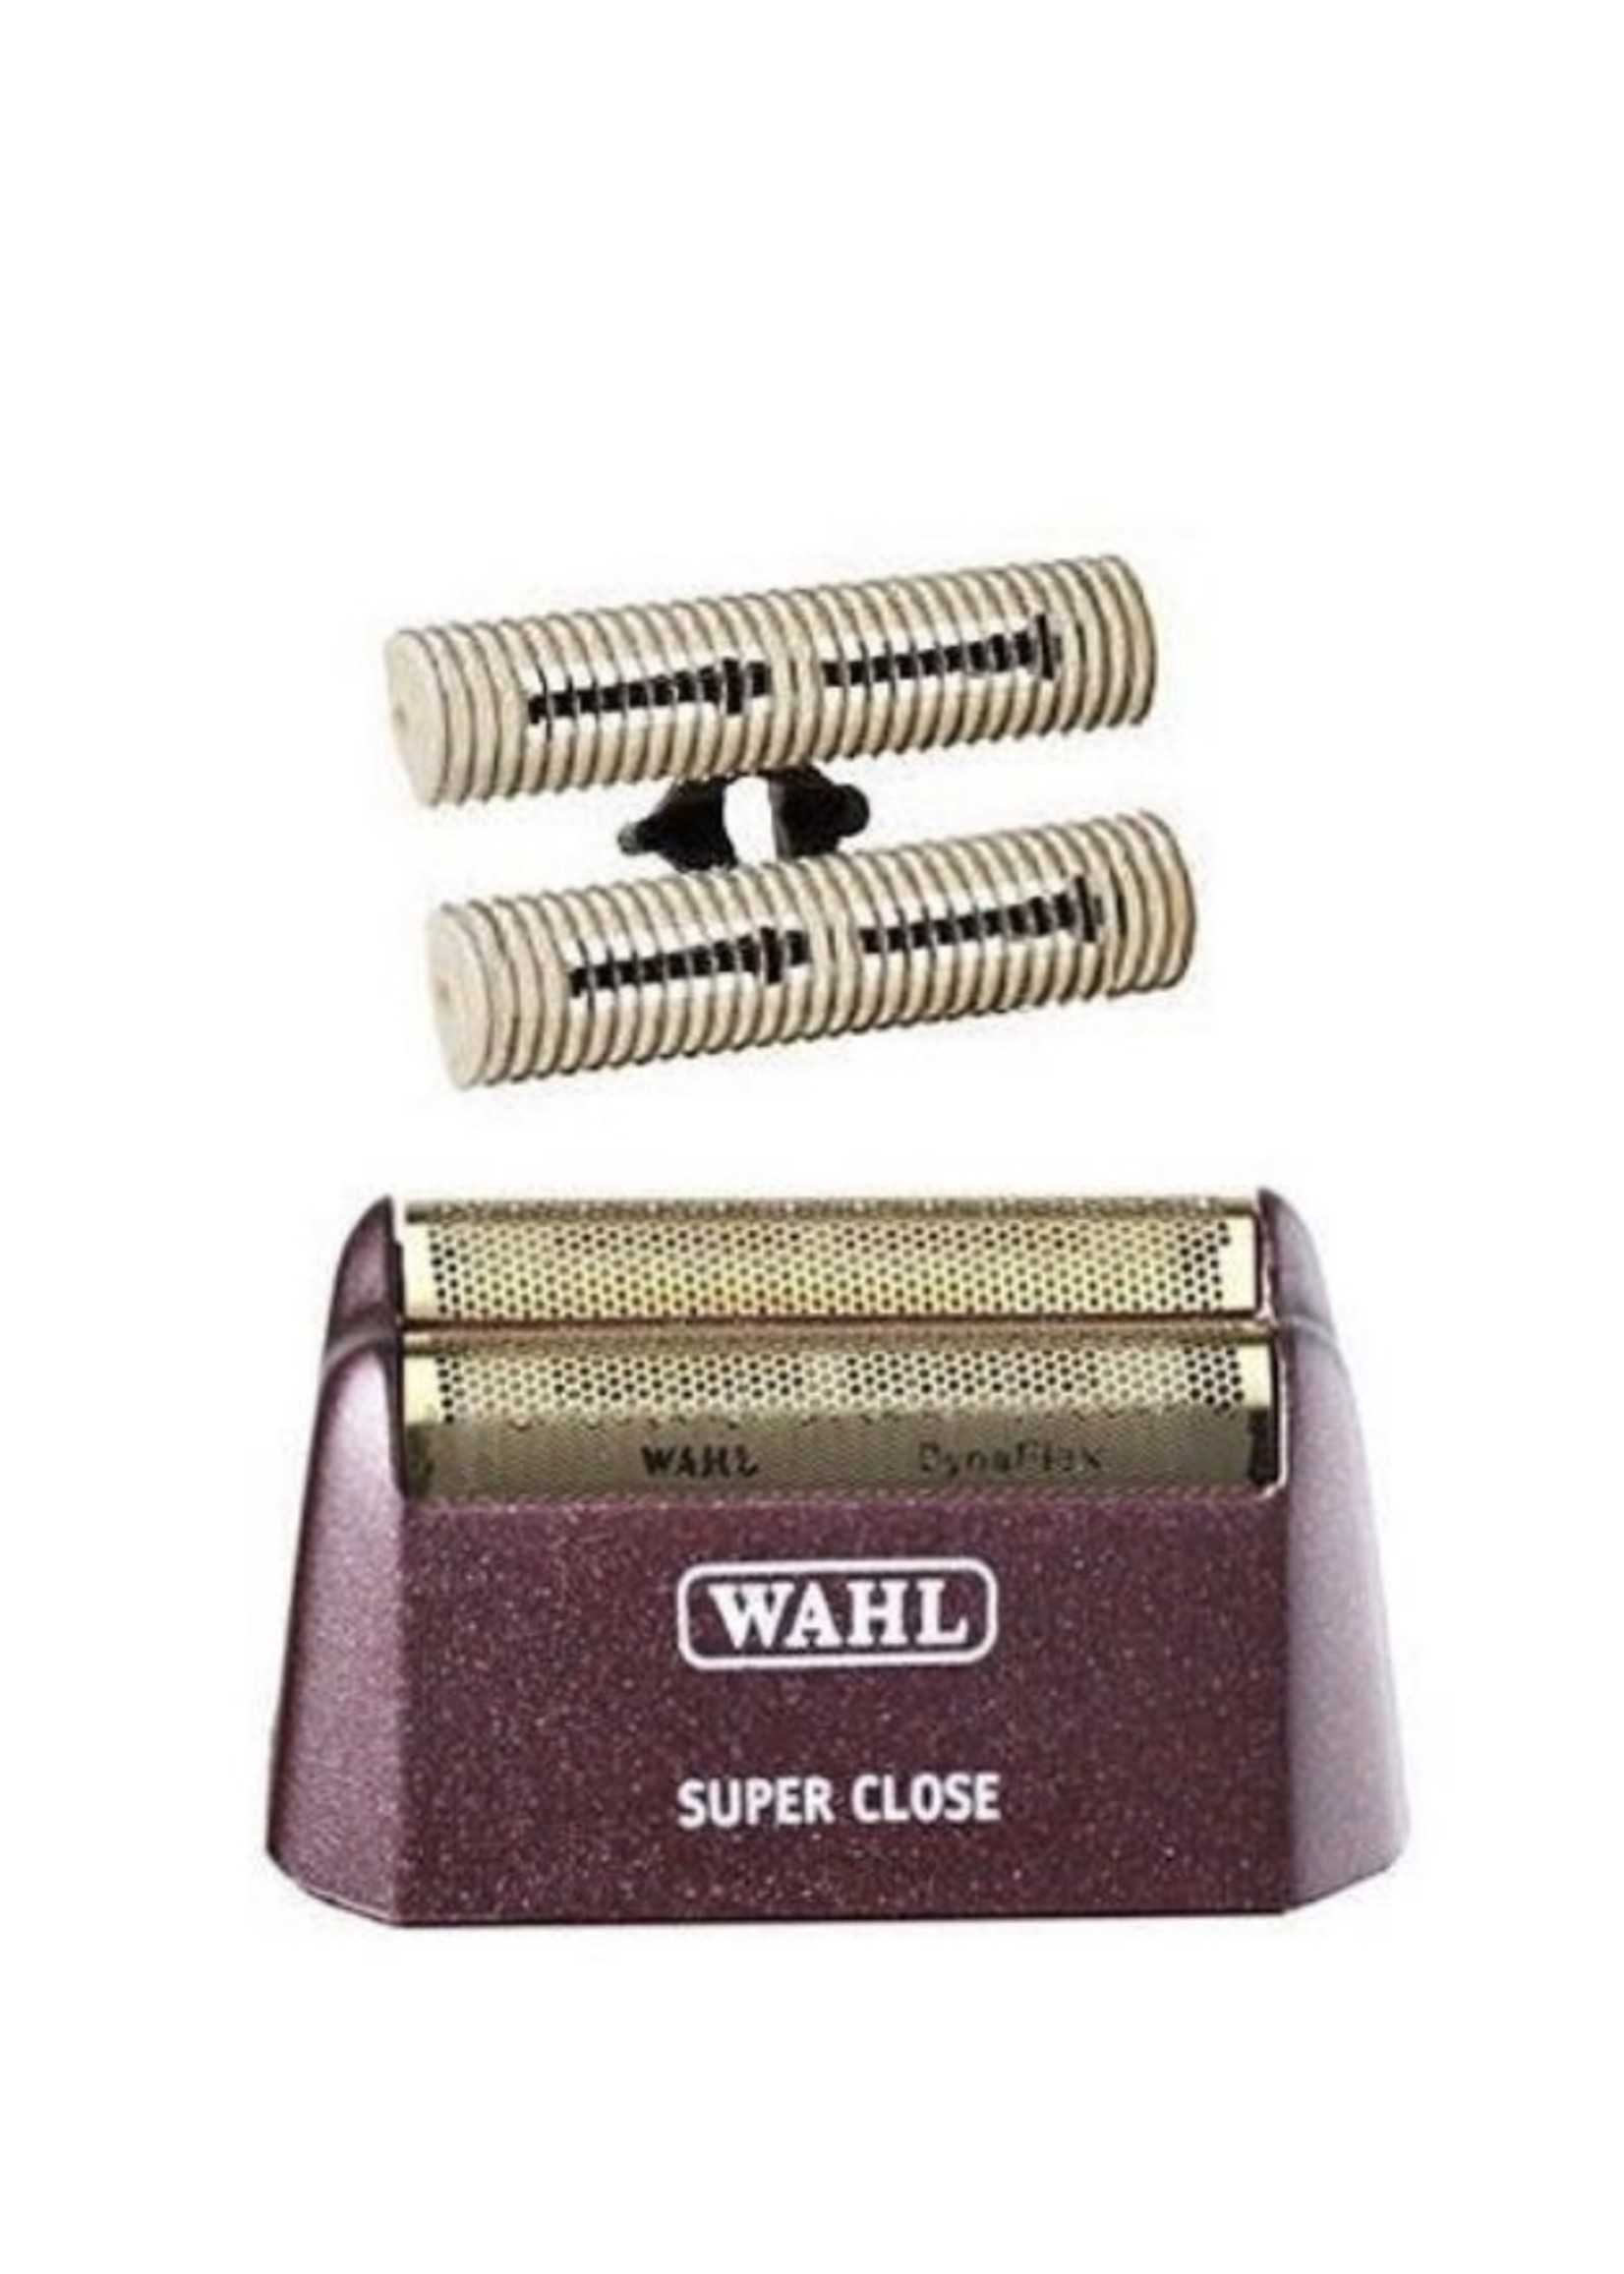 Wahl Wahl 5 Star Replacement Foil/Cutter